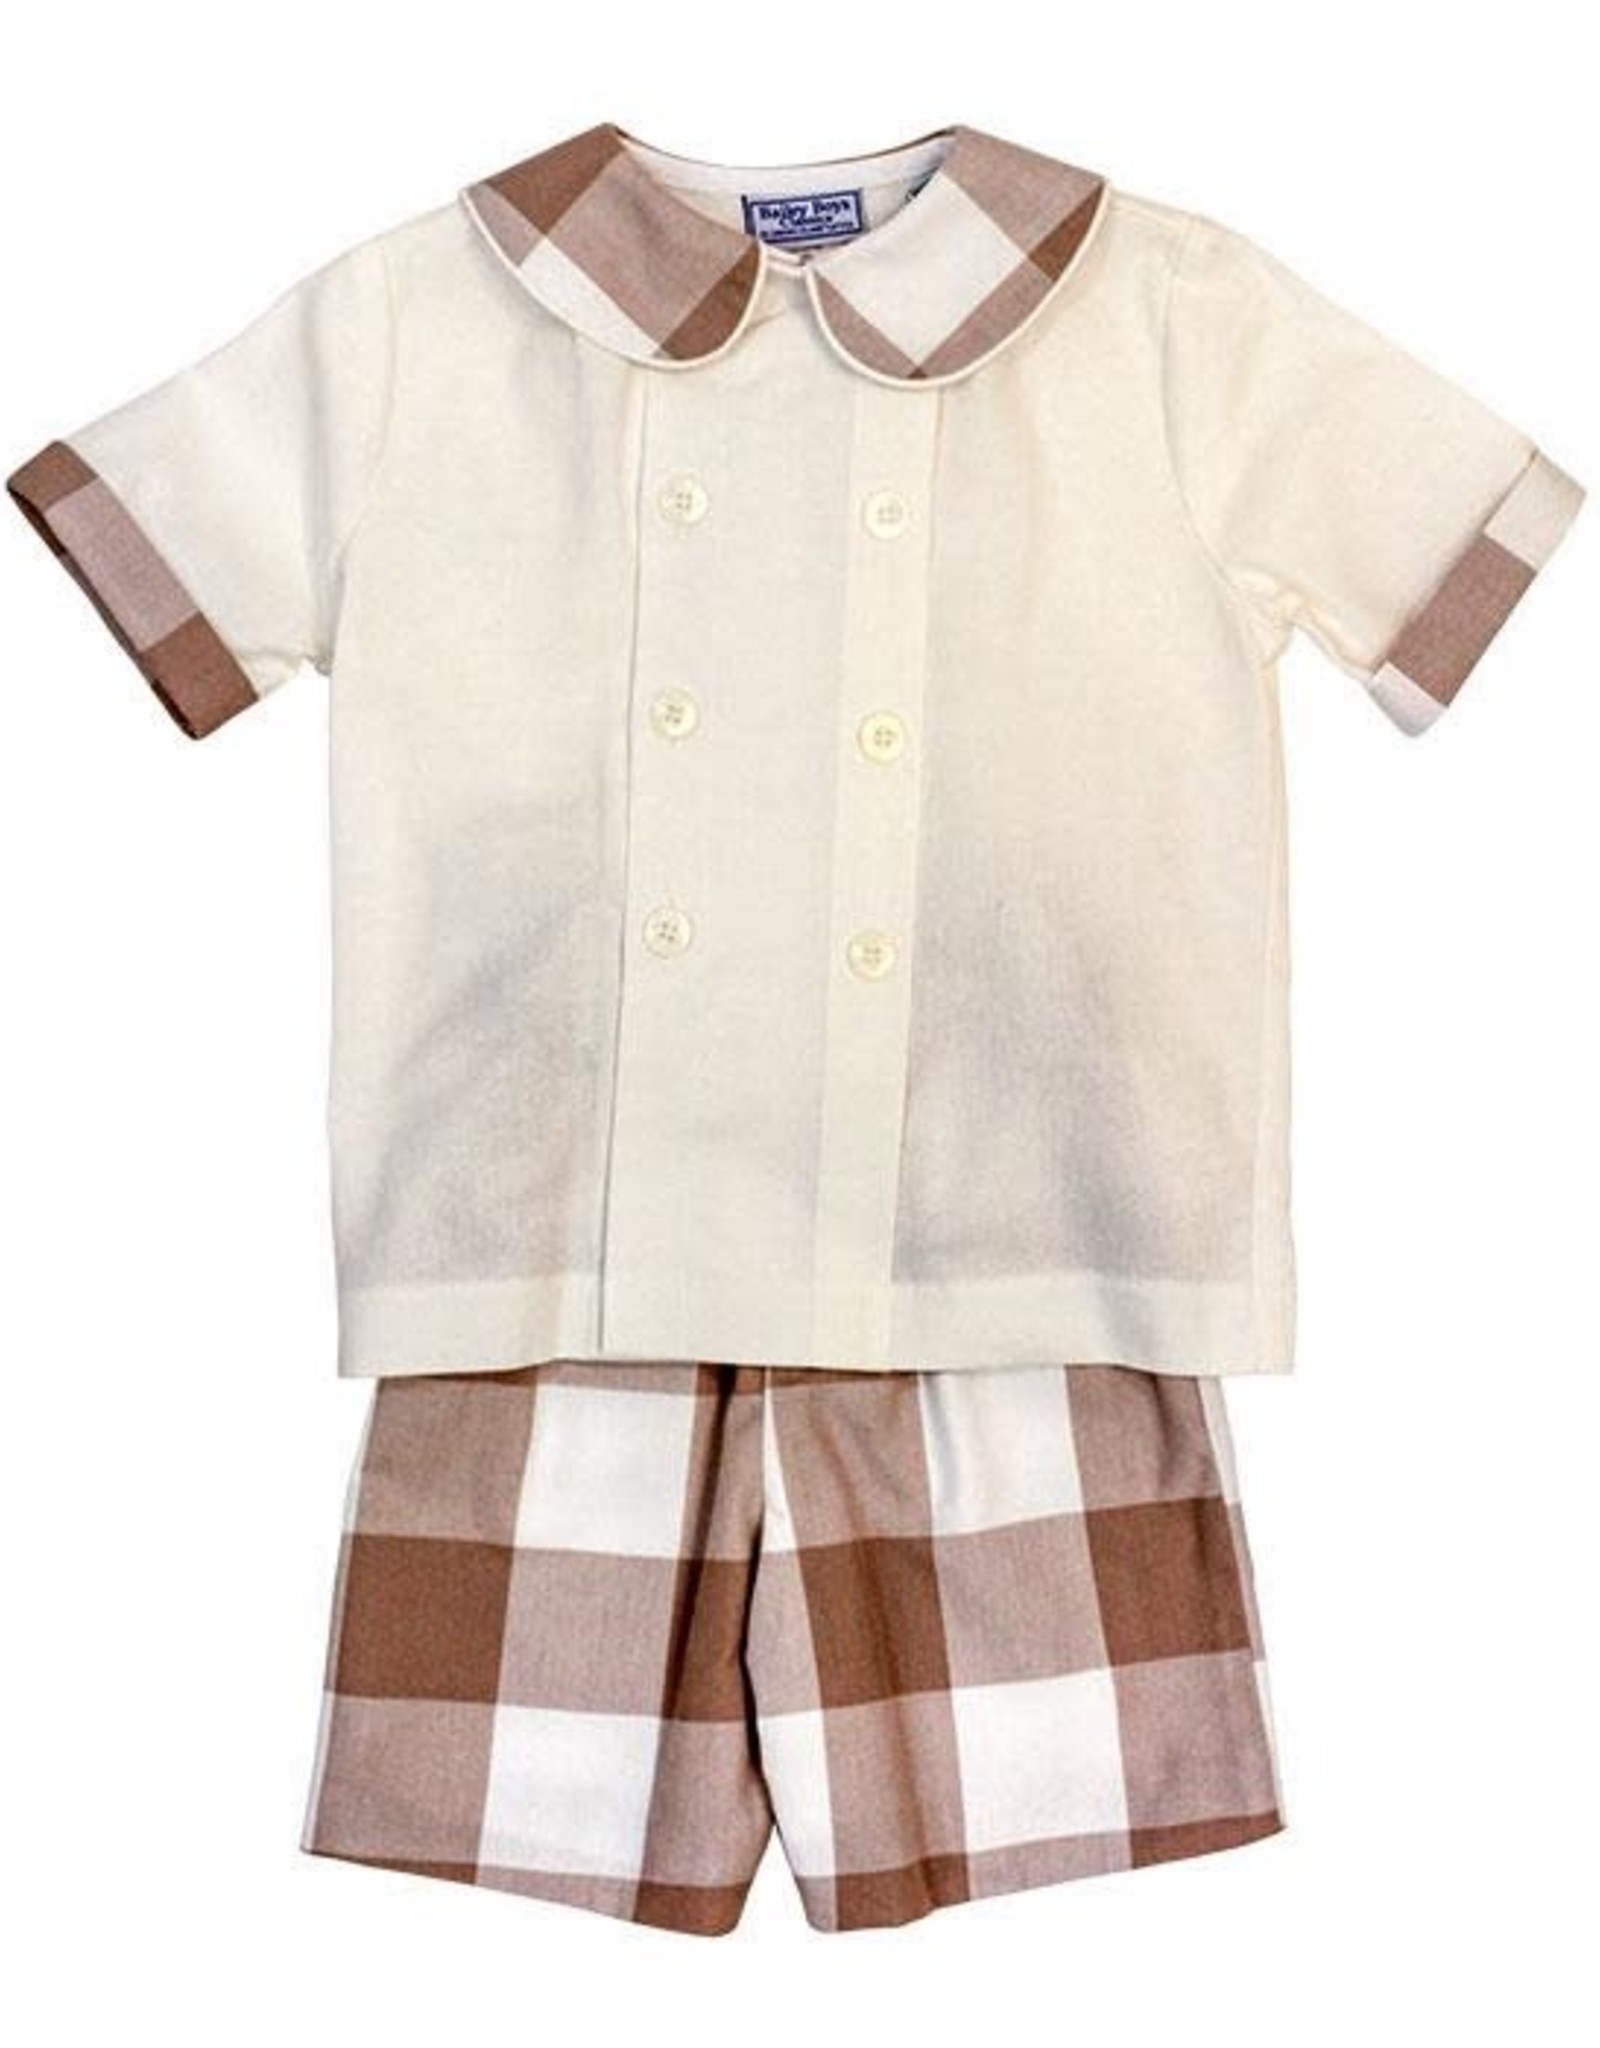 The Bailey Boys Champagne Buffalo Check Dressy Bub Short Set